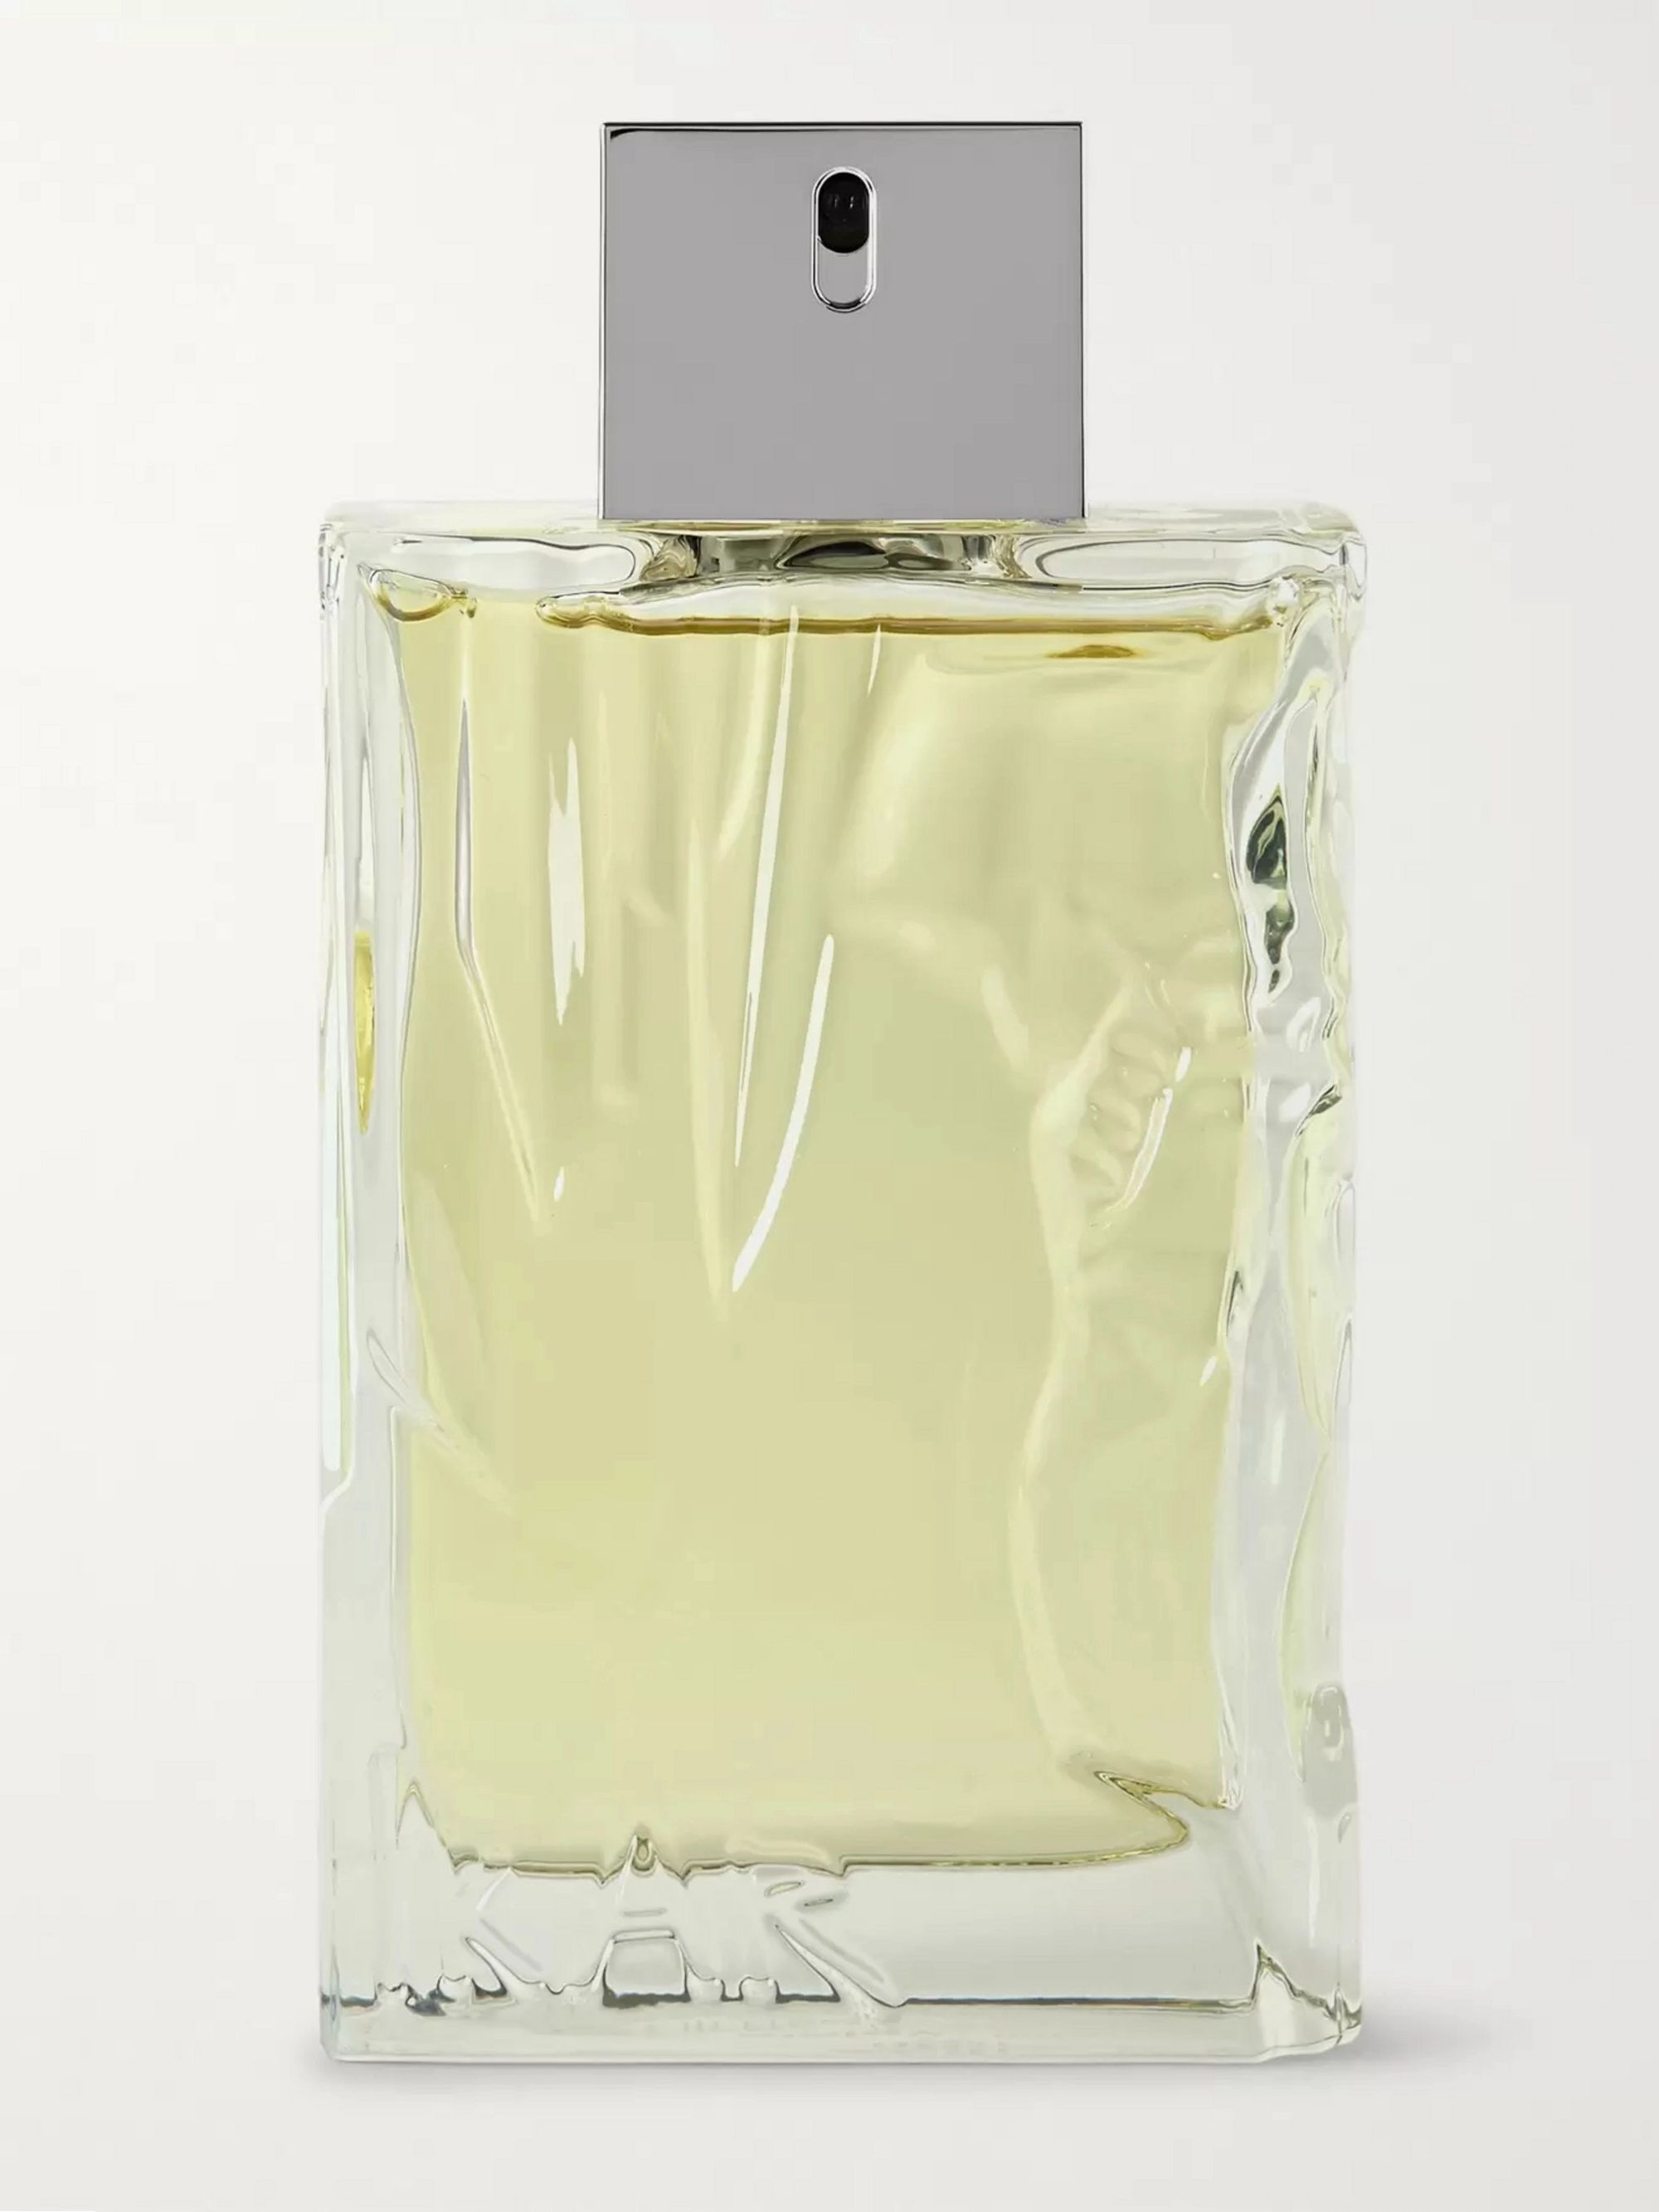 Sisley Eau D'Ikar Eau de Toilette - Bergamot, Lemon & Orange, 100ml